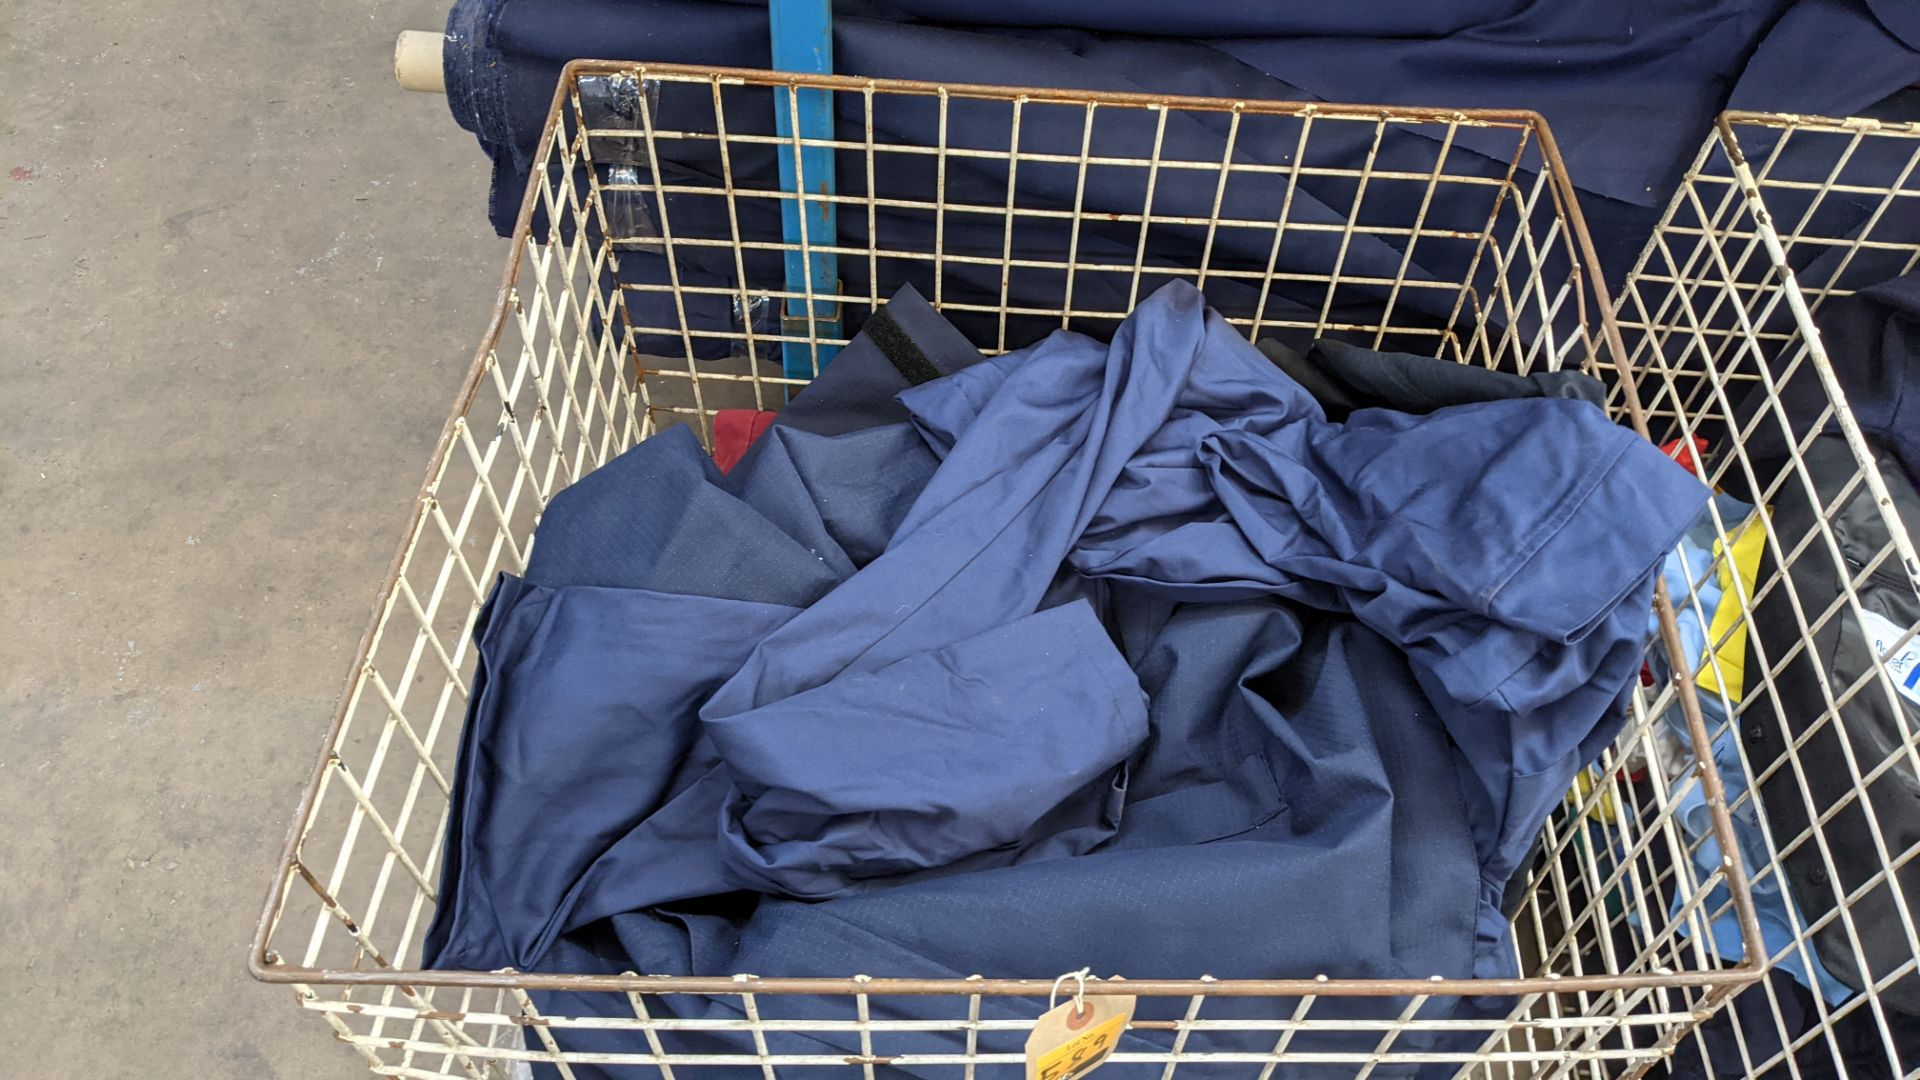 The contents of a cage of workwear & overalls - Image 3 of 6